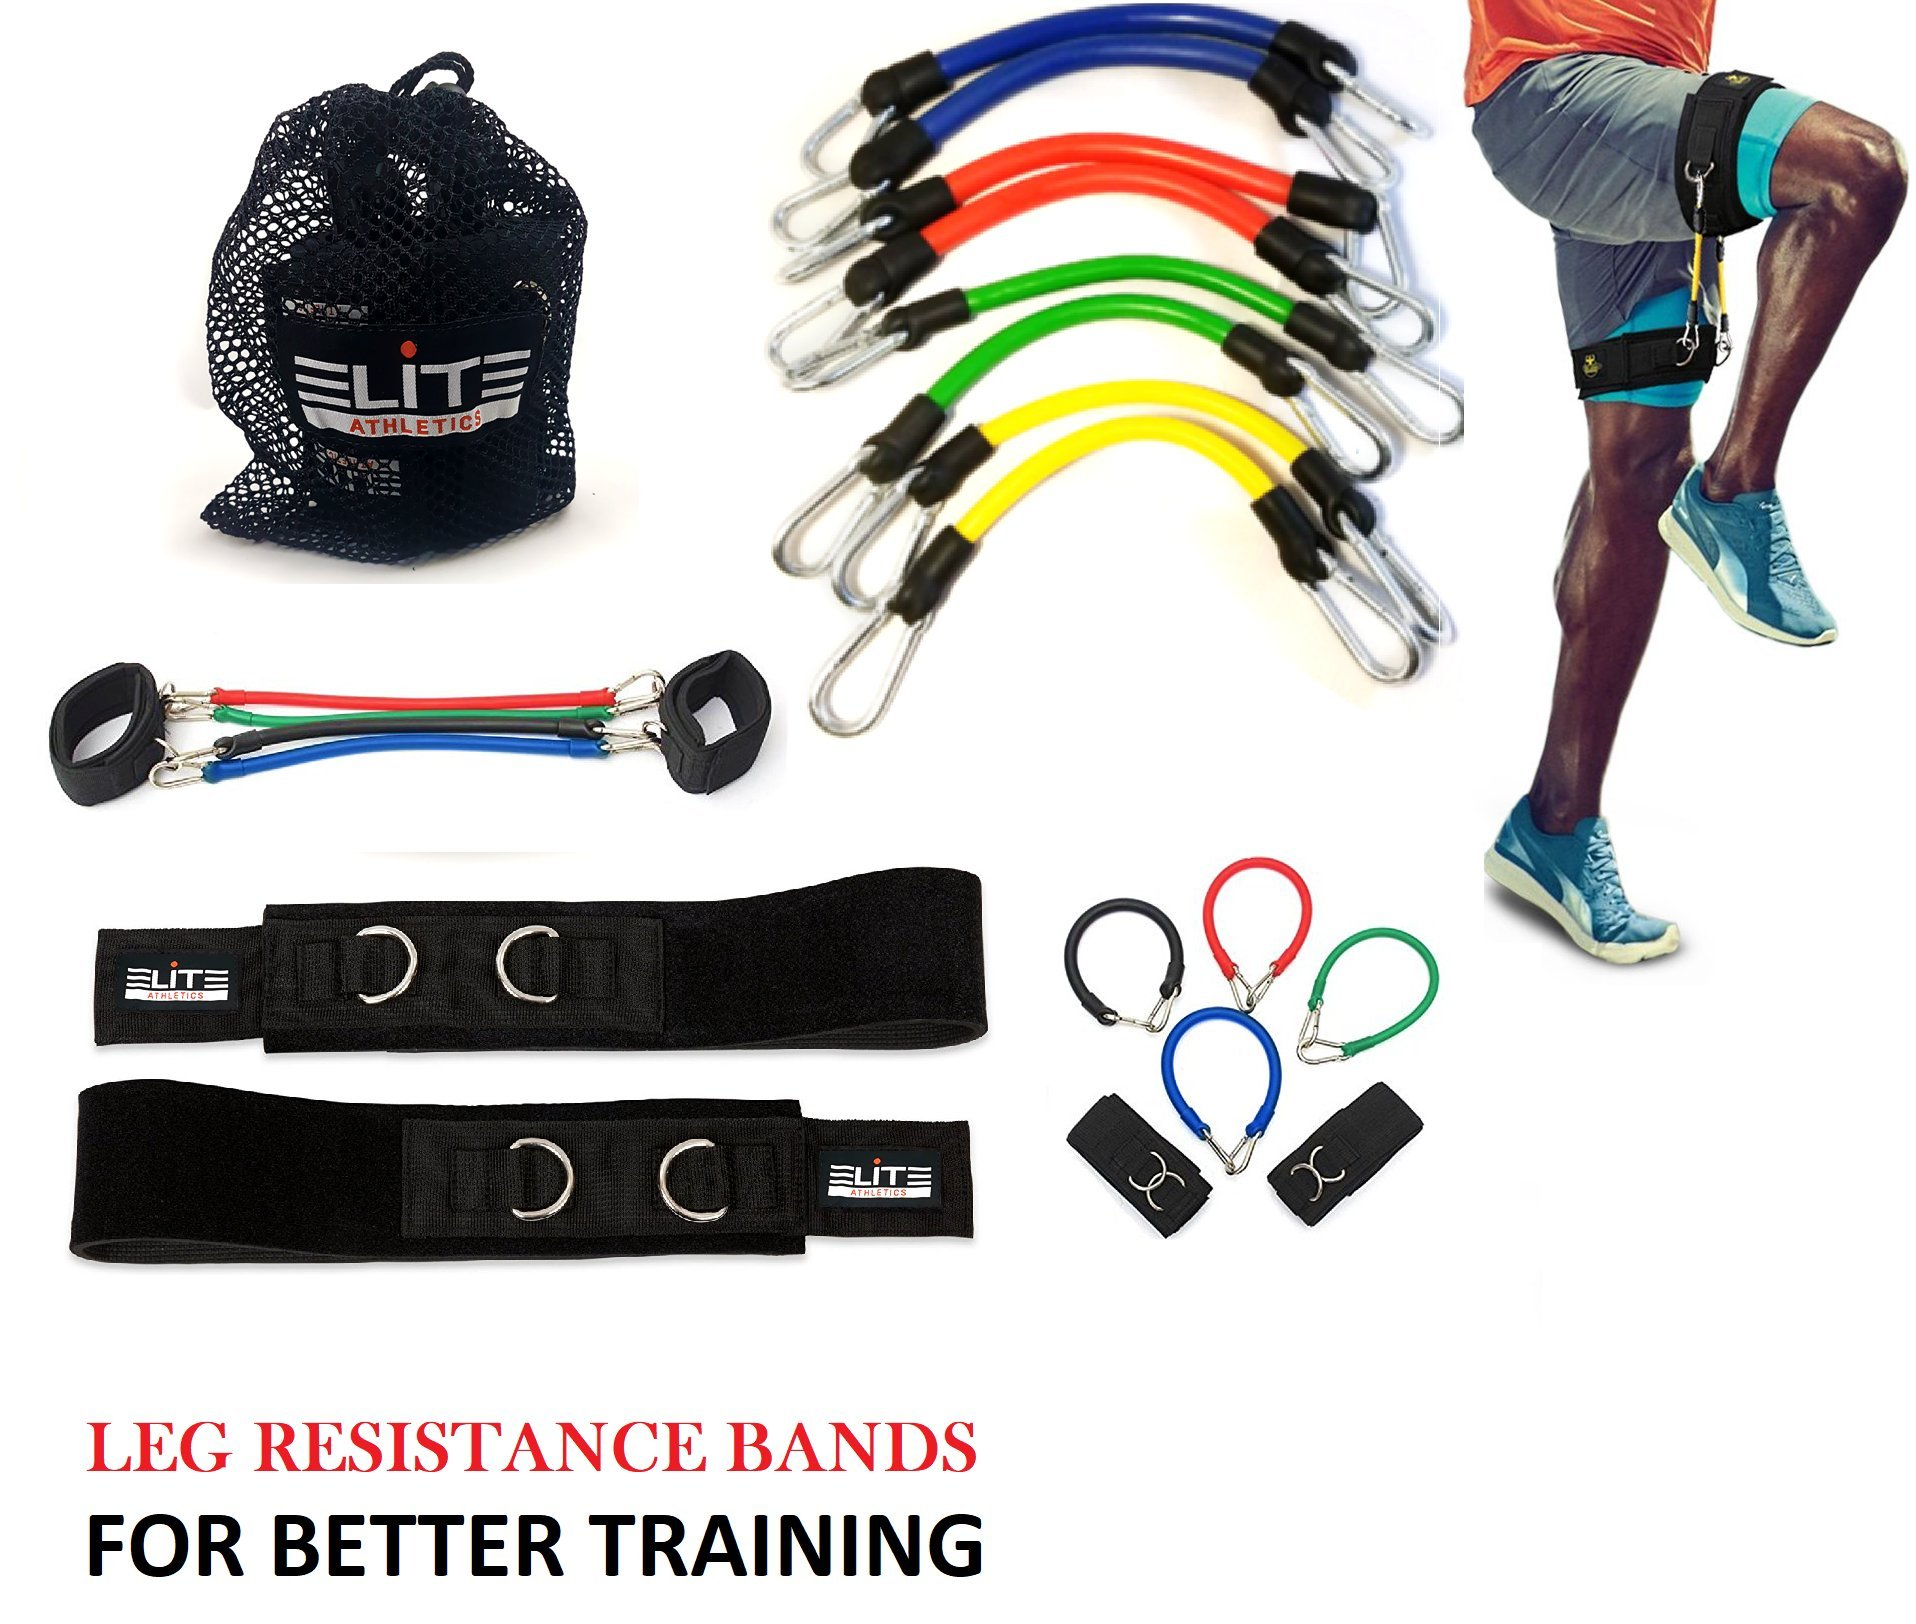 Speed Agility Kinetic Leg Resistance Bands - Ultimate Speed Training - Thigh Straps 8 Exercise&Fitness Bands + Carry Bag-Increase Muscle Endurance all Sports Specific -Football Basketball Soccer